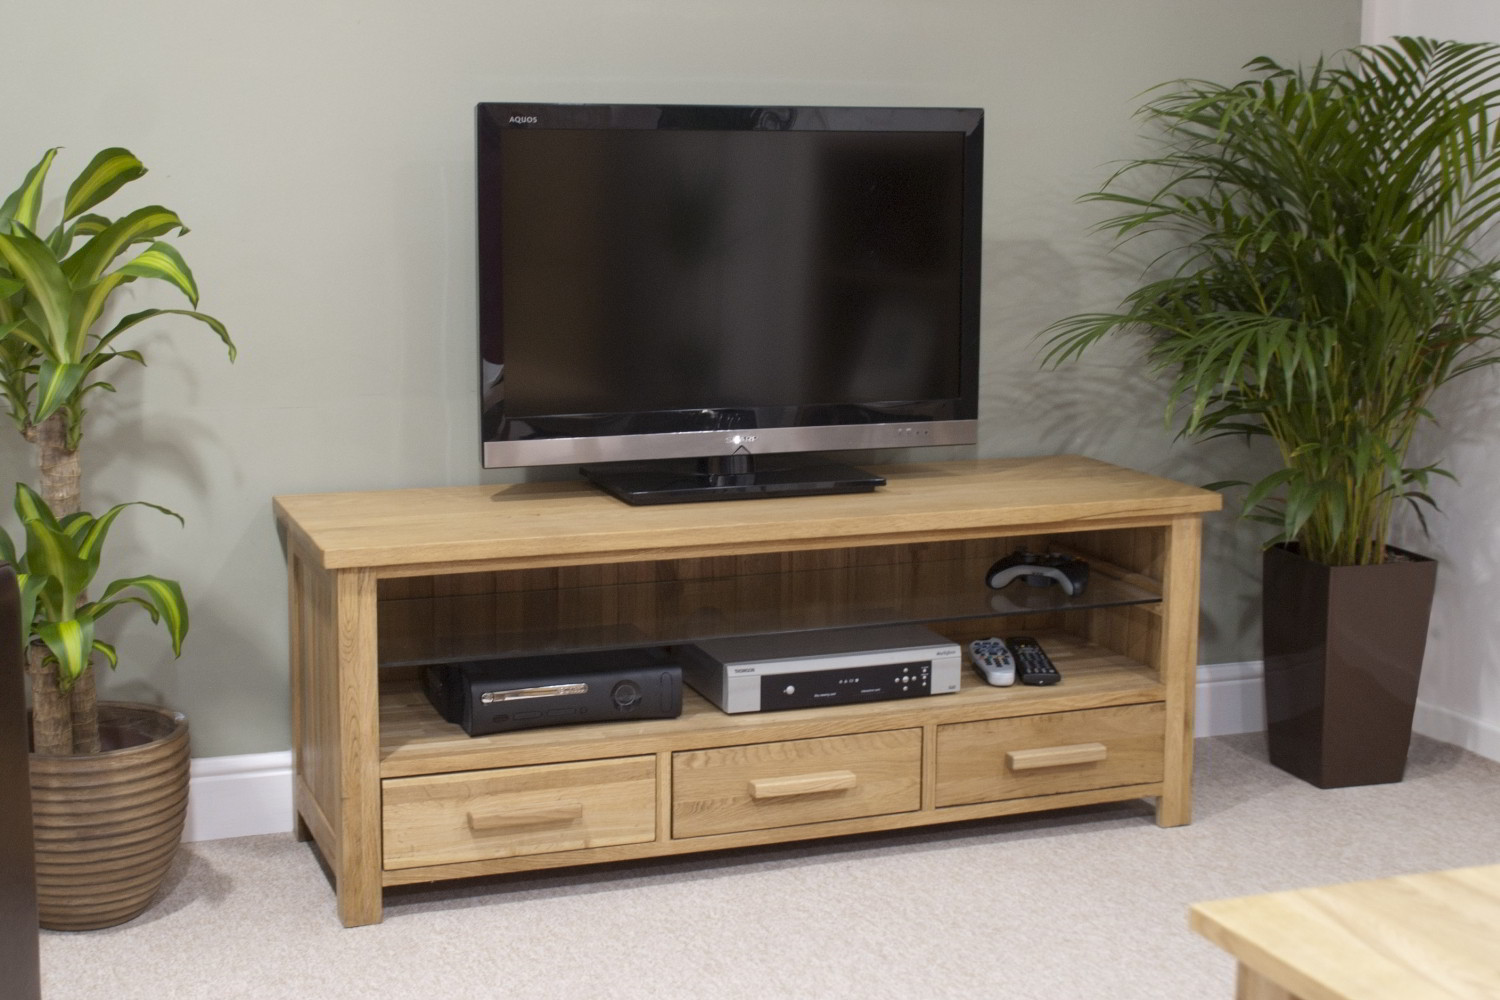 Eton solid oak living room furniture widescreen tv cabinet for Living room designs with oak furniture